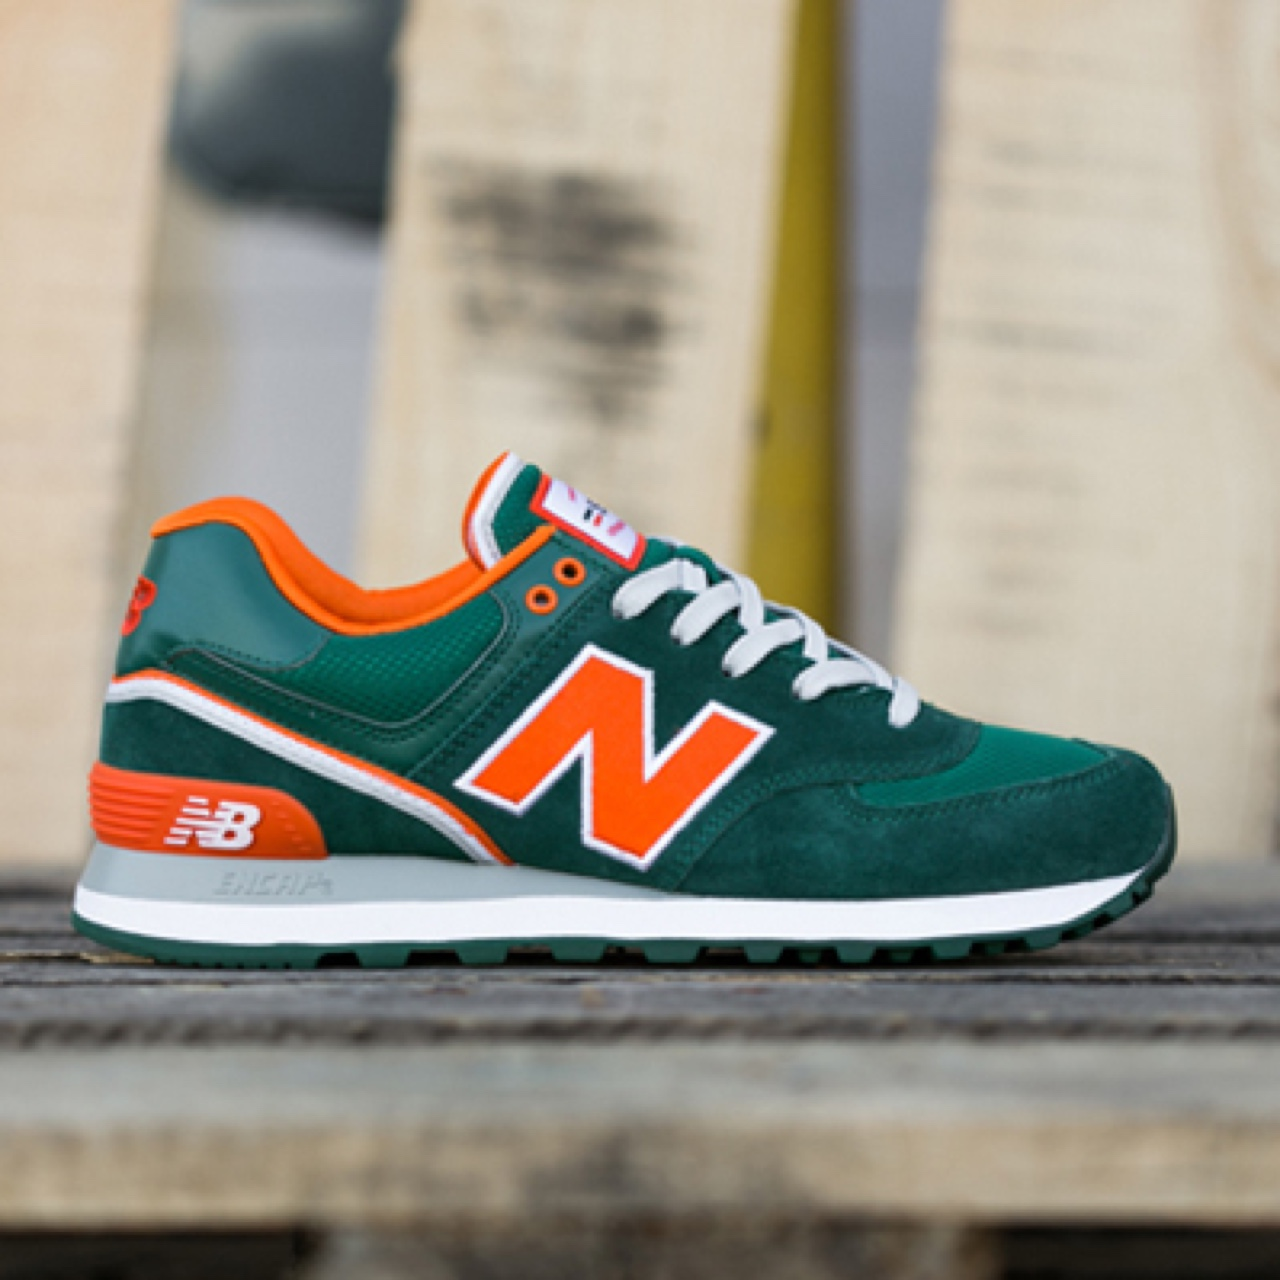 New Balance 574 Green/Orange 'Stadium' trainers in a ...